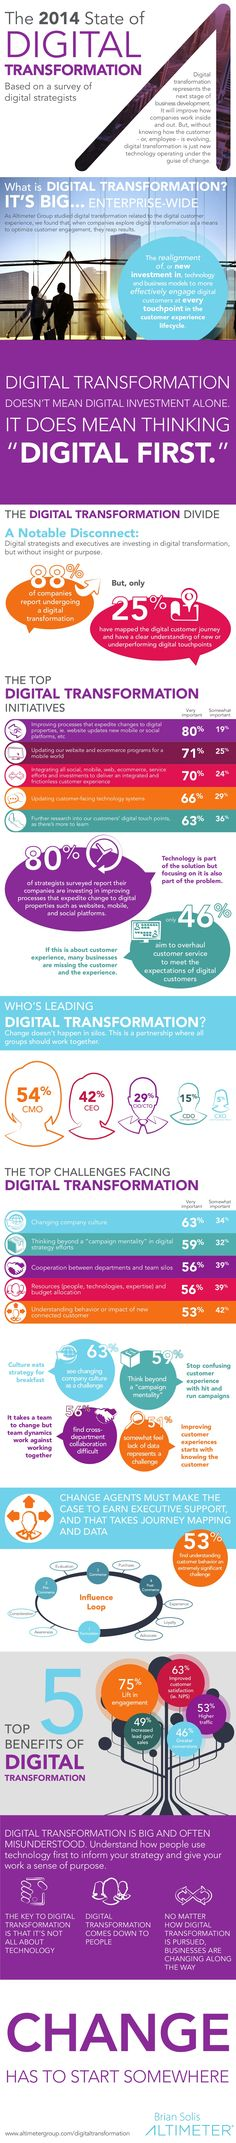 [Infographic] The 2014 State of Digital Transformation by Altimeter Group by Altimeter Group Network on SlideShare via slideshare Digital Marketing Strategy, Online Marketing, Marketing Ideas, Media Marketing, Social Web, Social Business, Social Media, Business Marketing, Business Tips